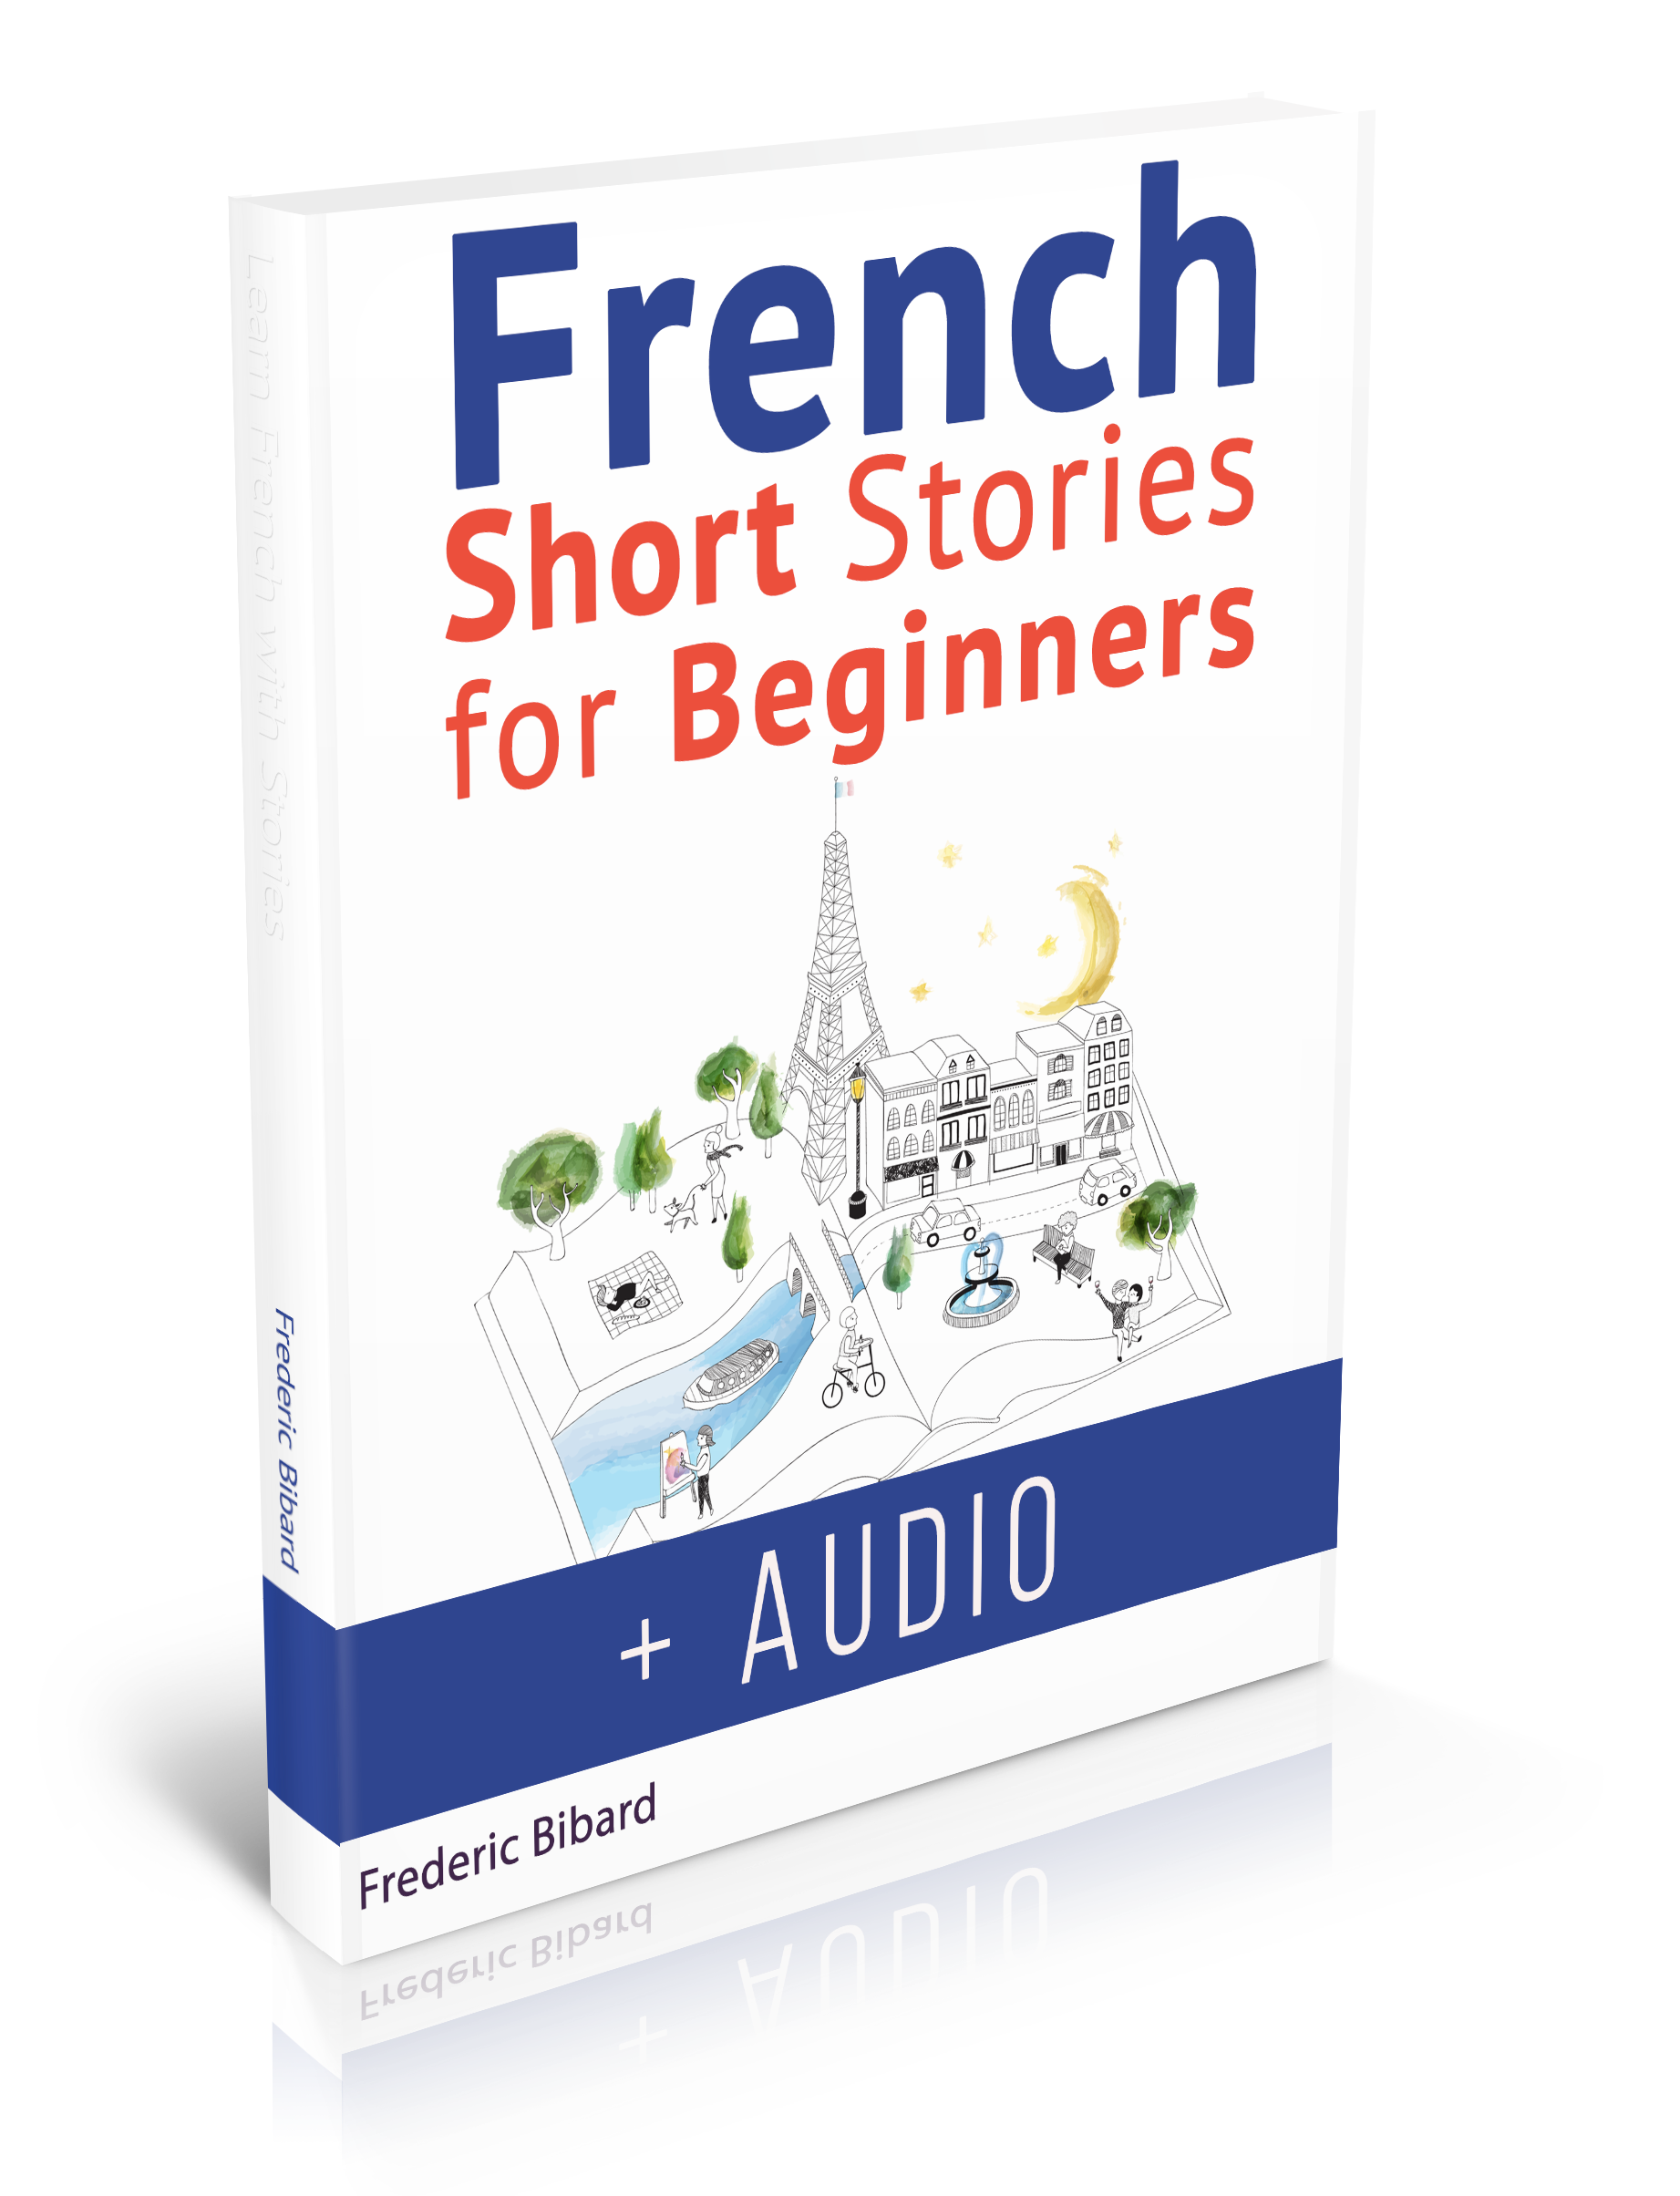 French Short Stories for Beginners UK.